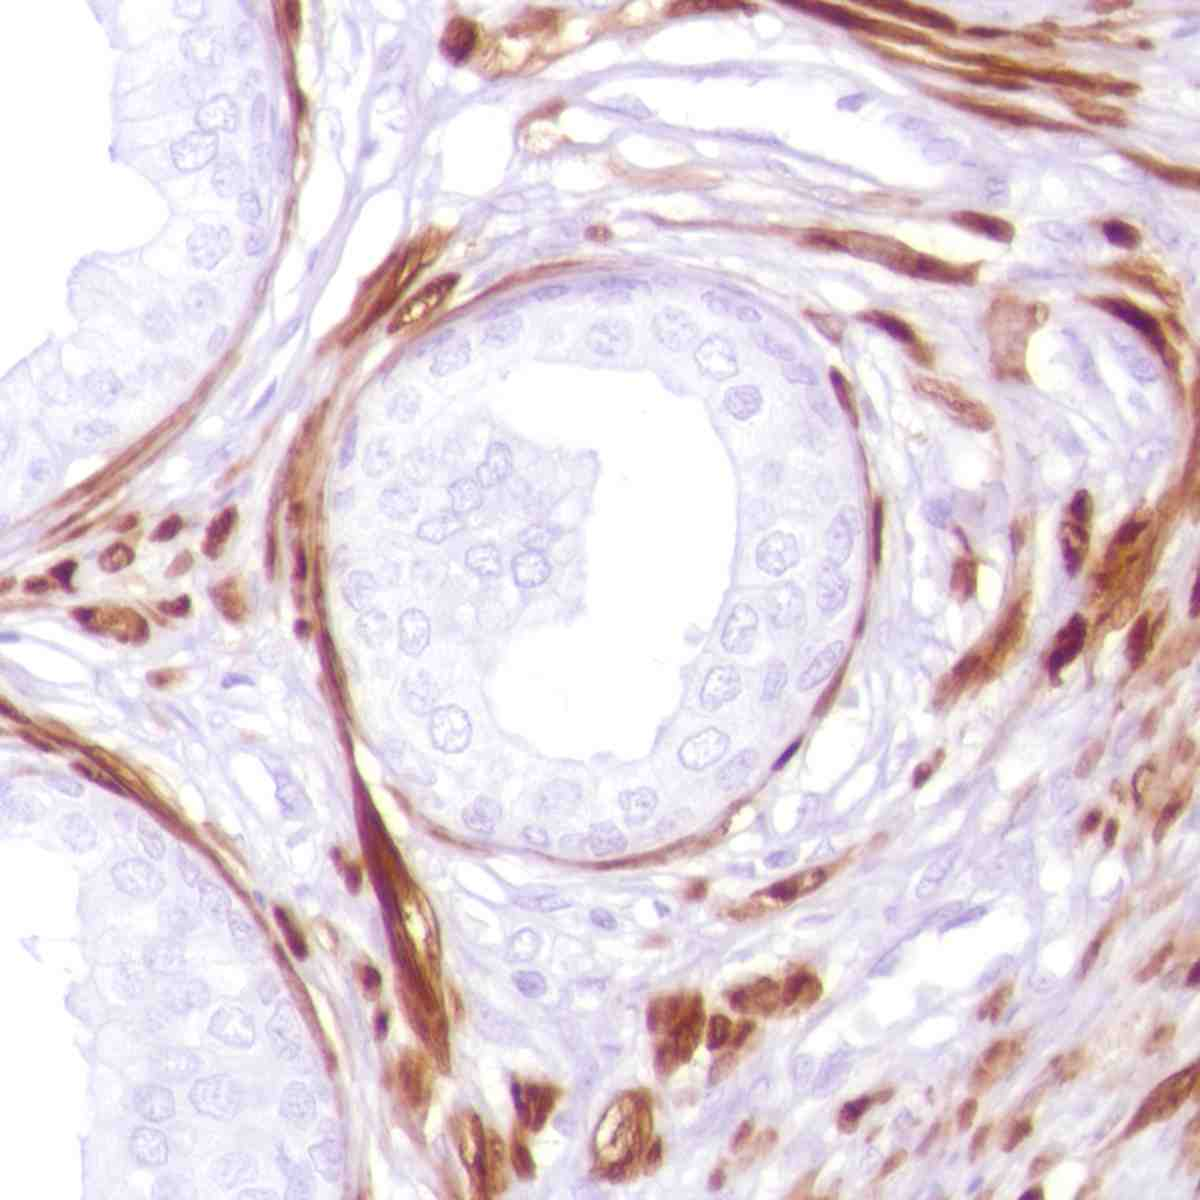 Human Prostate stained with anti-Calponin-1 antibody